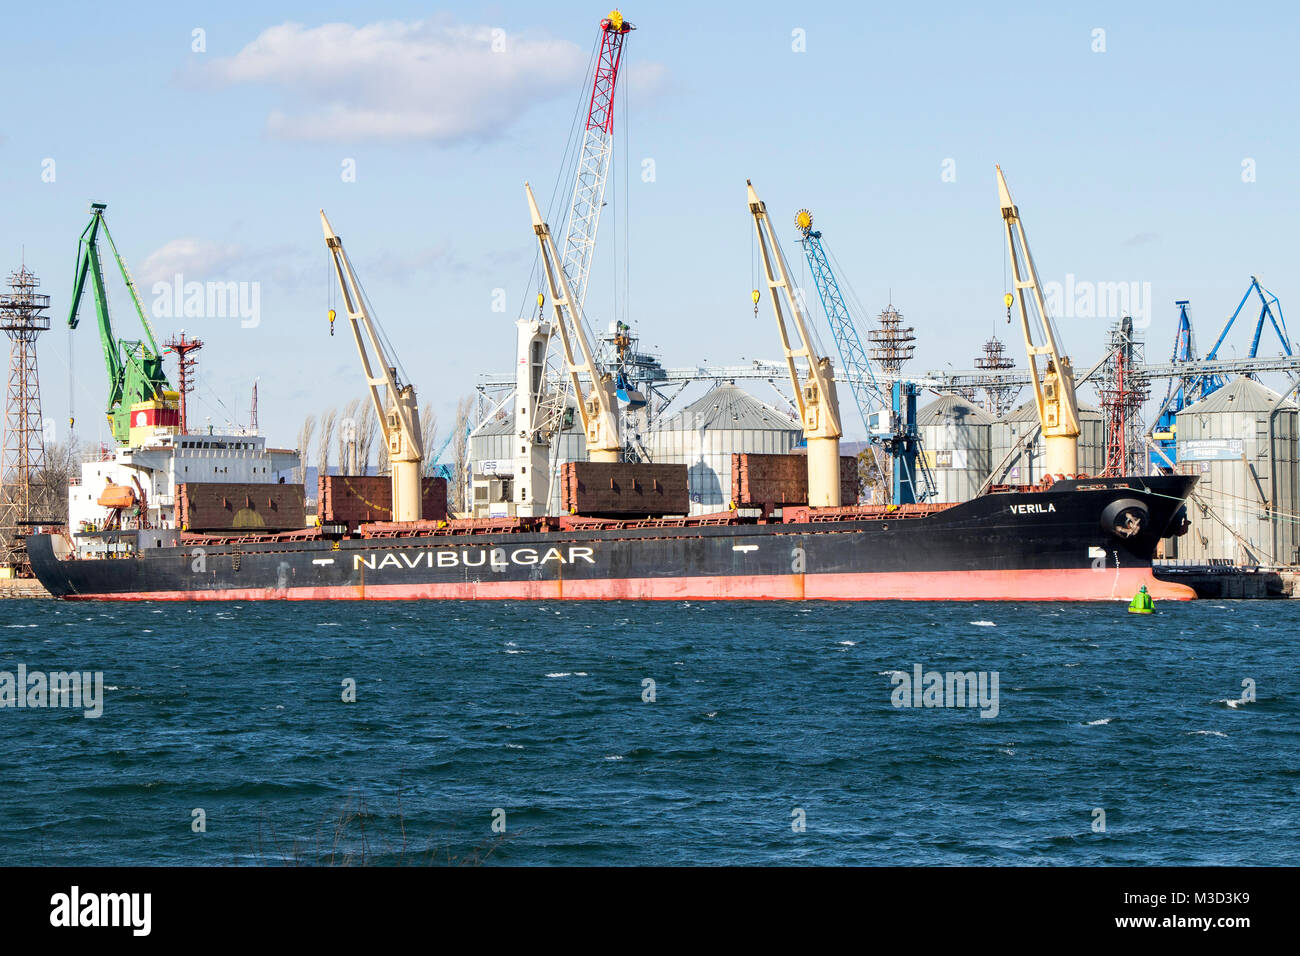 sea tanker NAVIBULGAR in the port of bulgaria 09.02.2018 - Stock Image